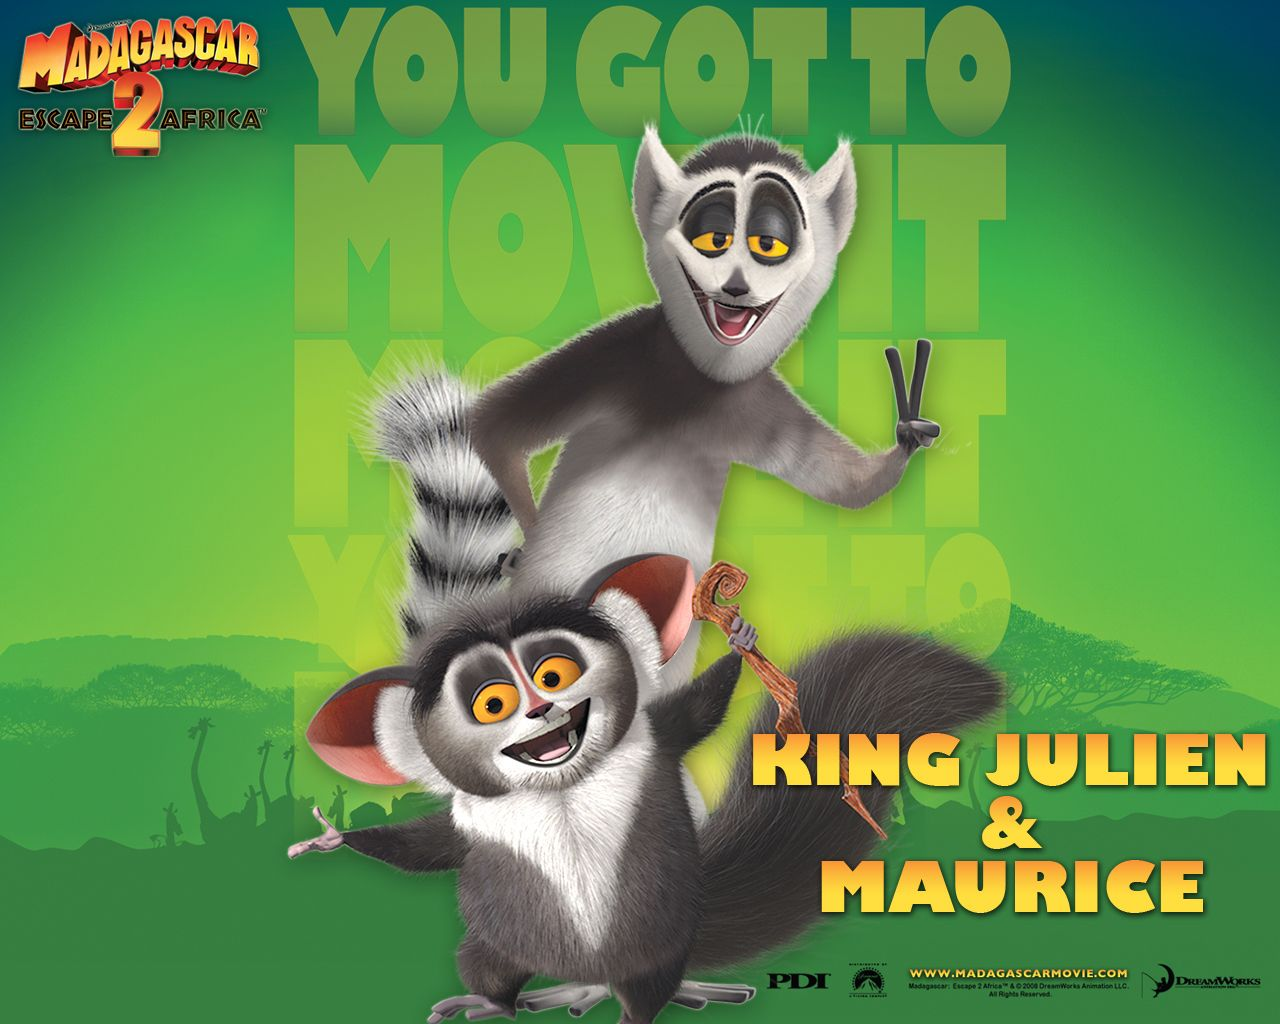 Madagascar Escape Africa Movie Wallpapers | madagascar costumes in